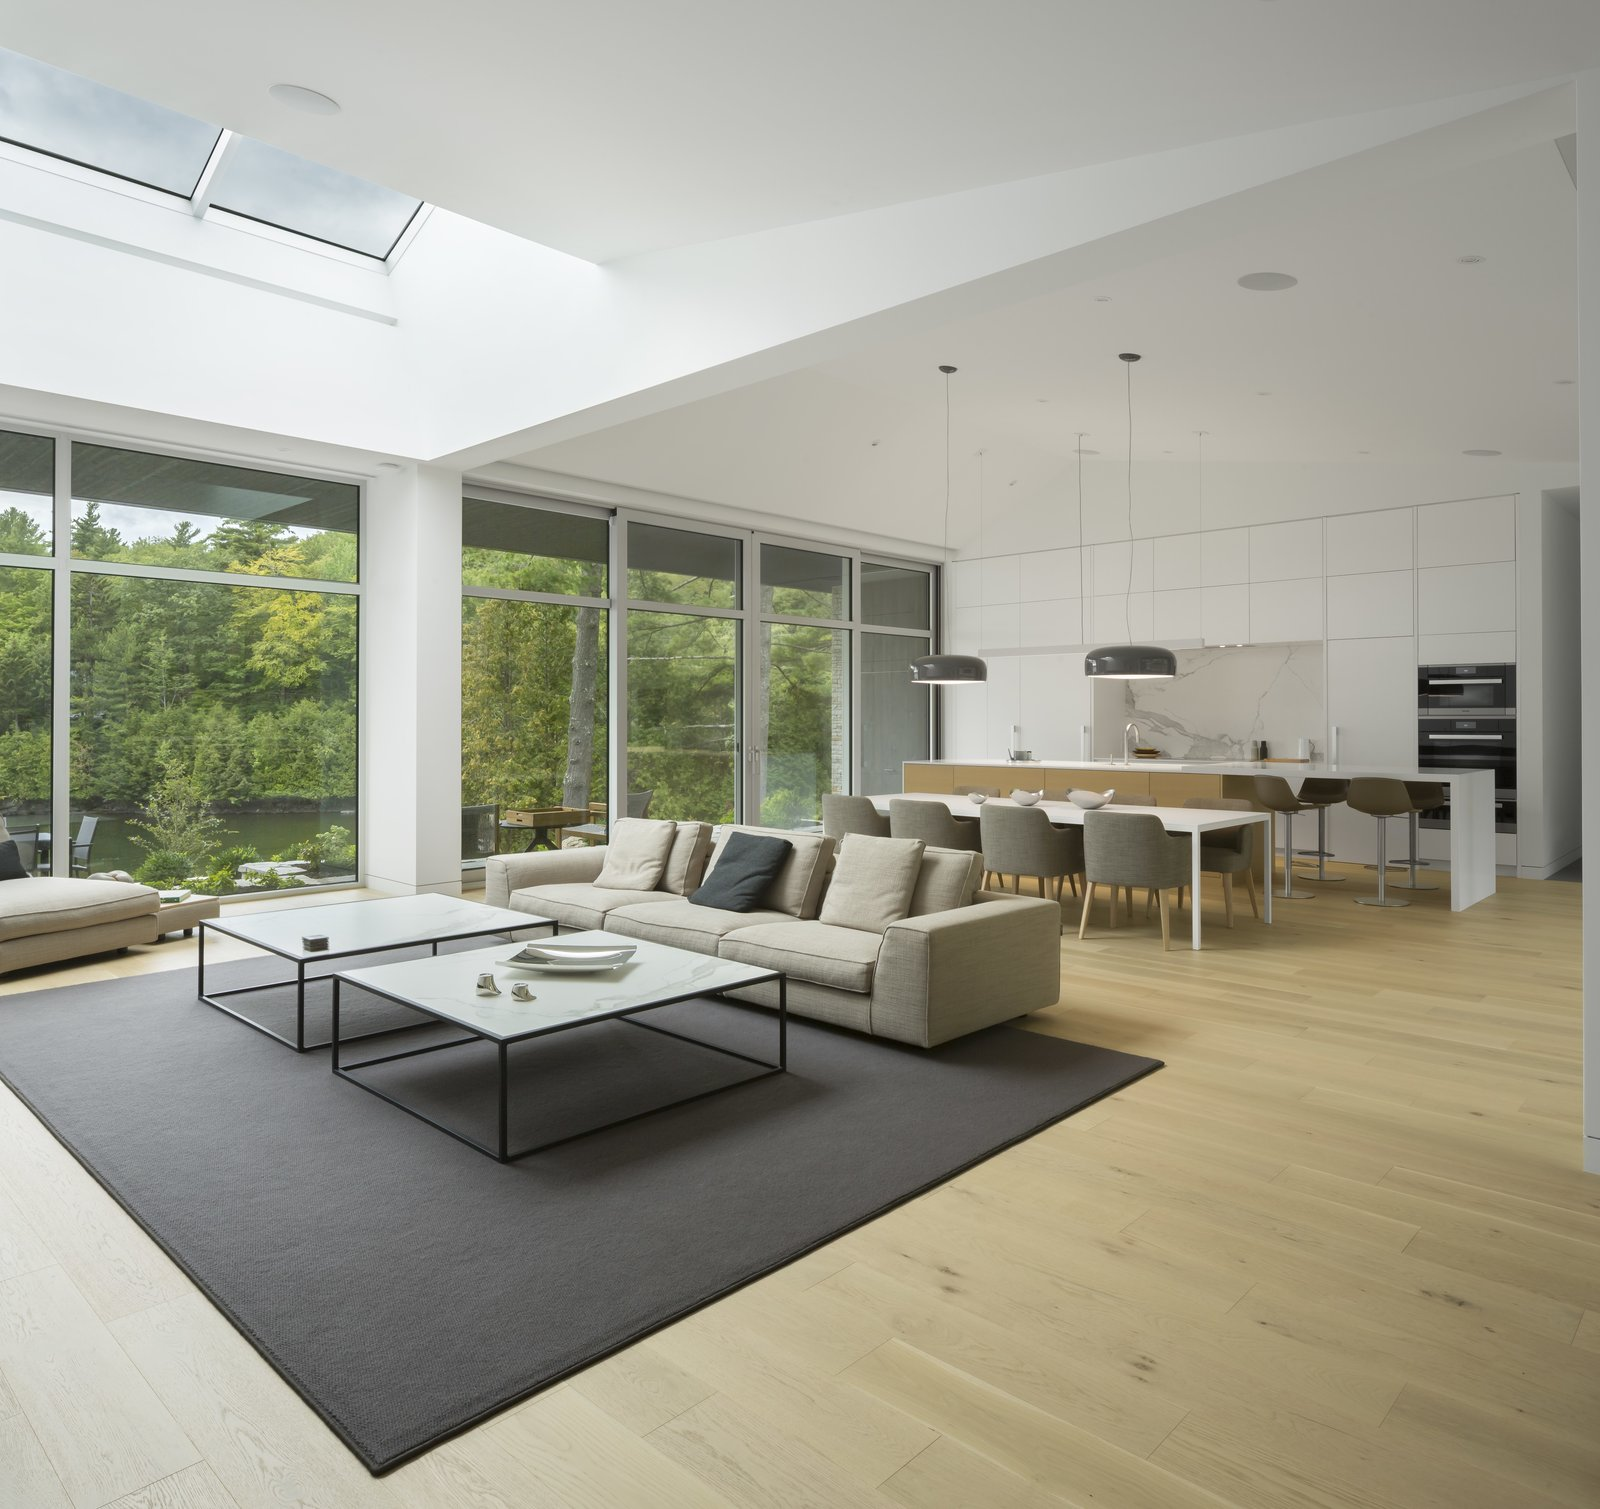 Living Room, Sofa, Coffee Tables, and Light Hardwood Floor A skylight brings plenty of natural light into the living room.  Photo 6 of 14 in A Lakeside Retreat in Quebec Looks Sharp With a Blade-Like Roof